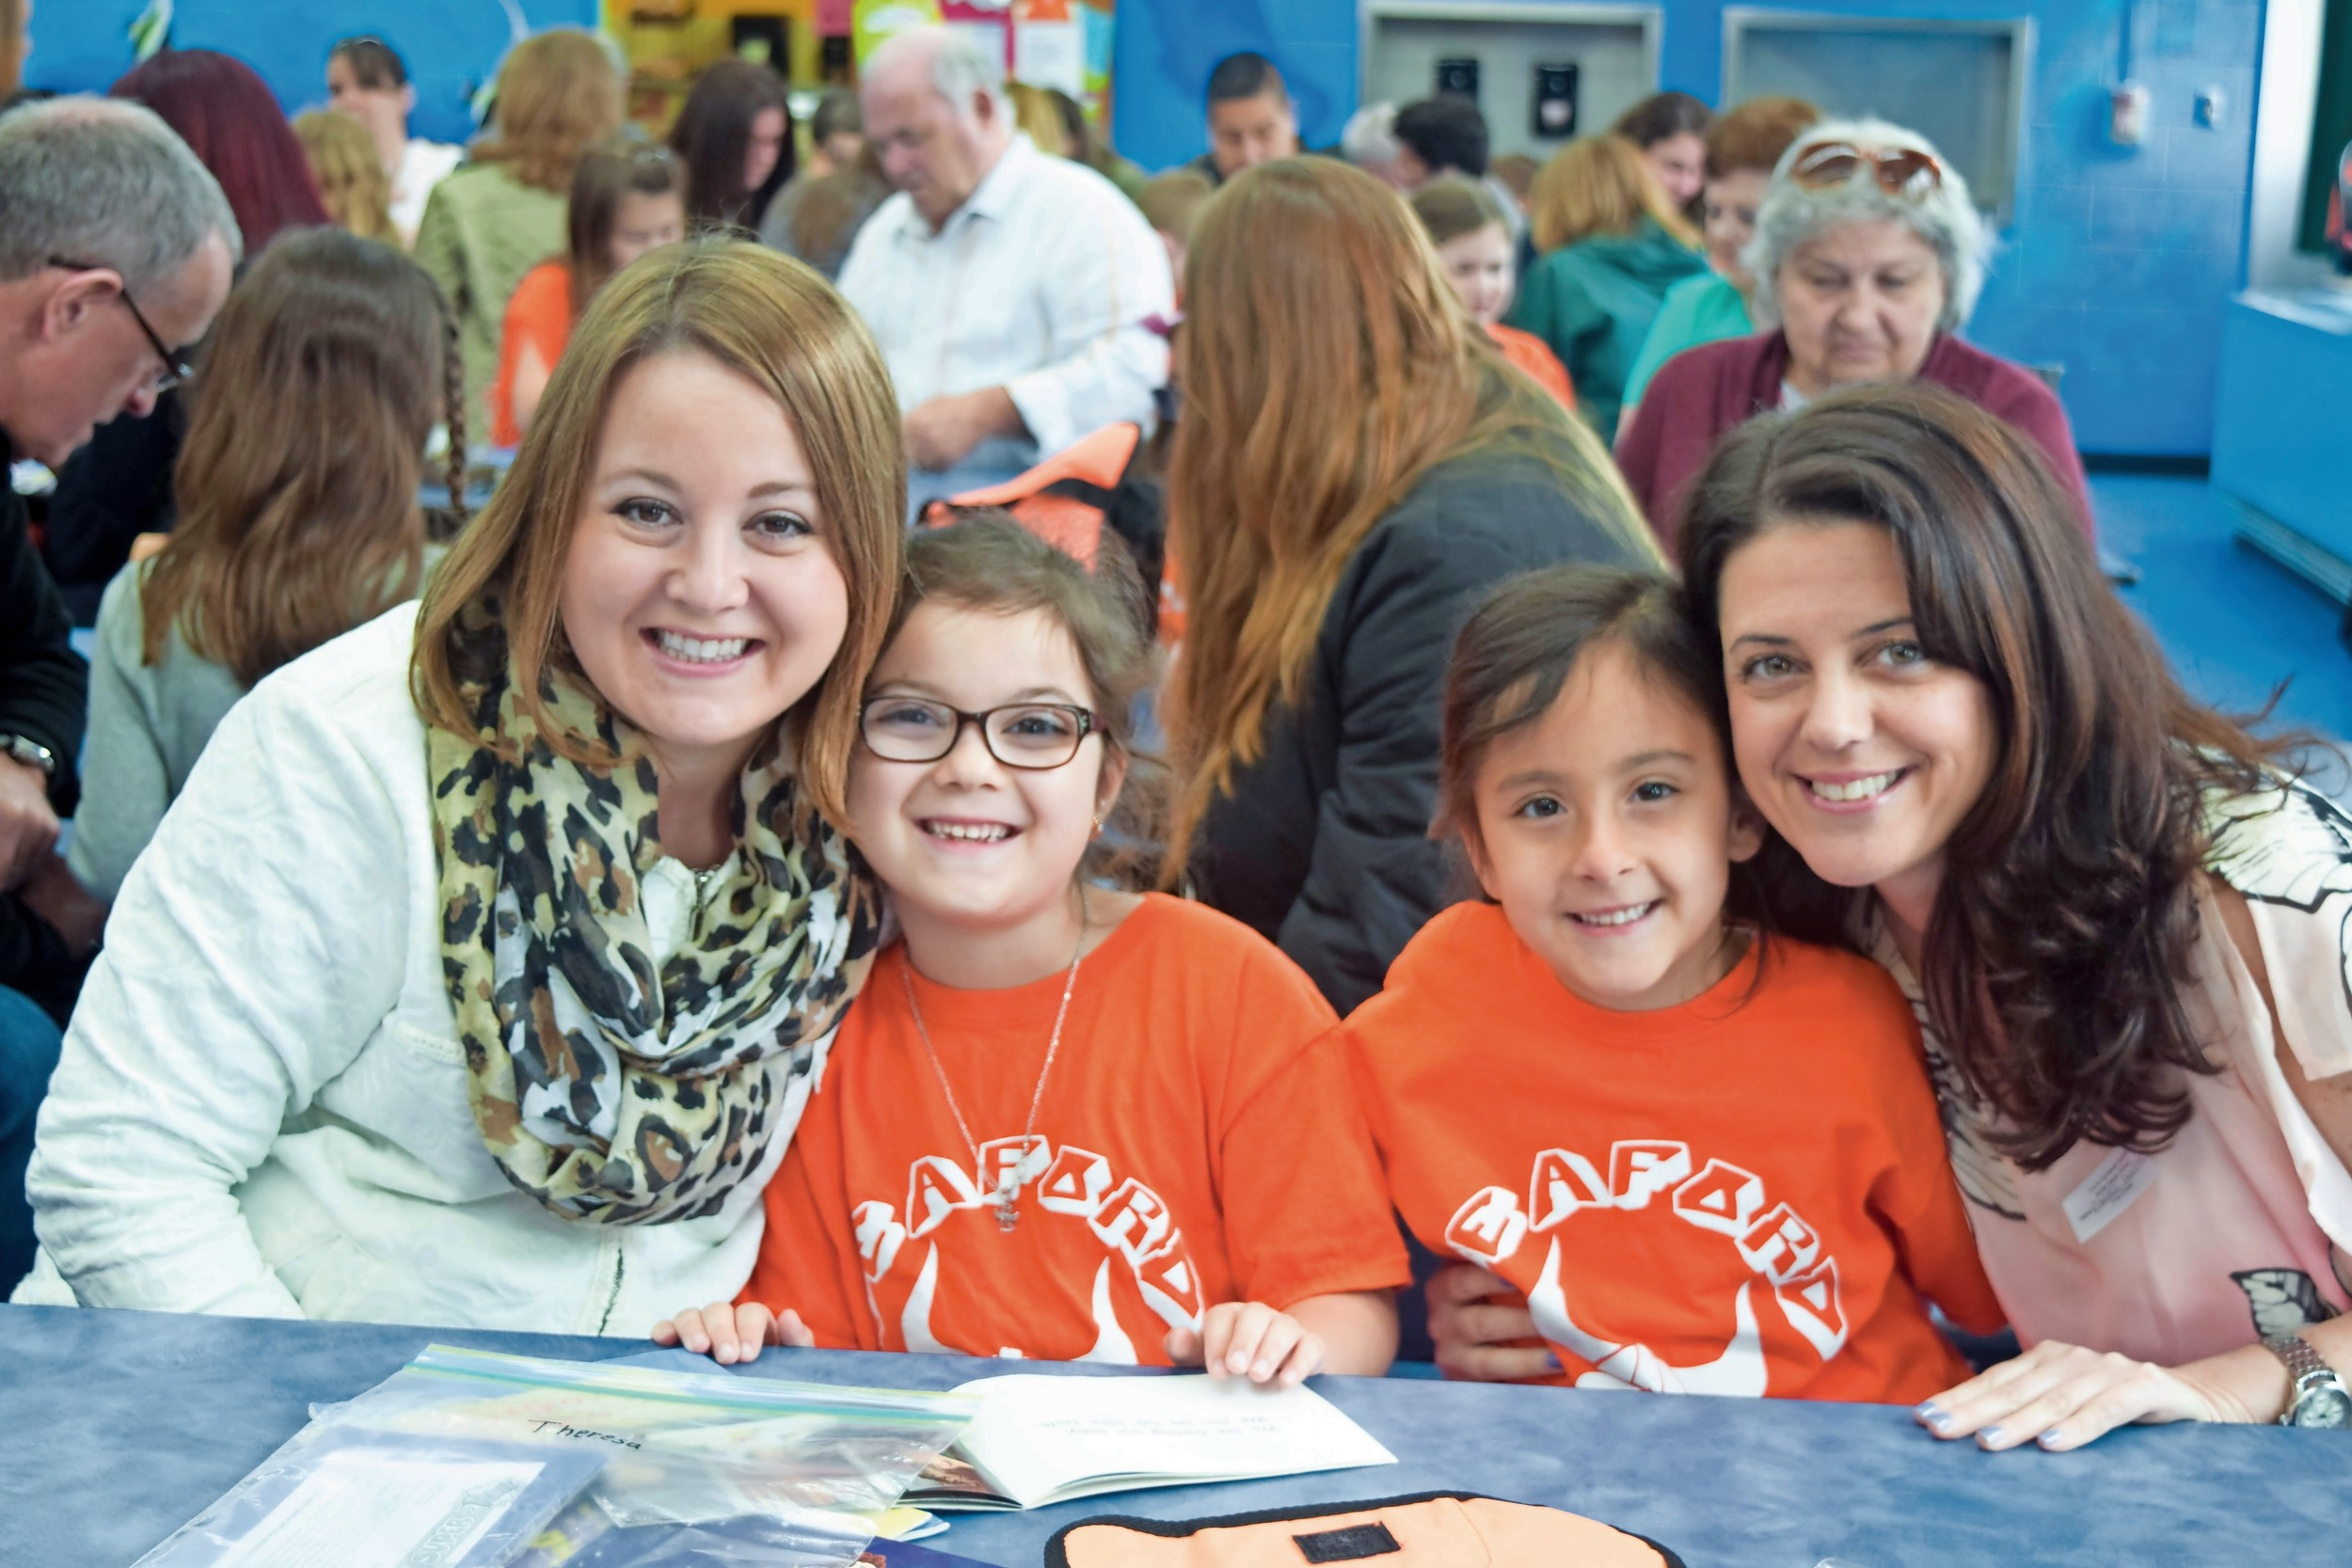 Seaford Harbor Elementary students invited friends and family to a Special Someone Day event on May 5. Christine Scannello, left, Theresa Scannello, Julianna Gonzalez and Connie Gonzalez worked on a craft.